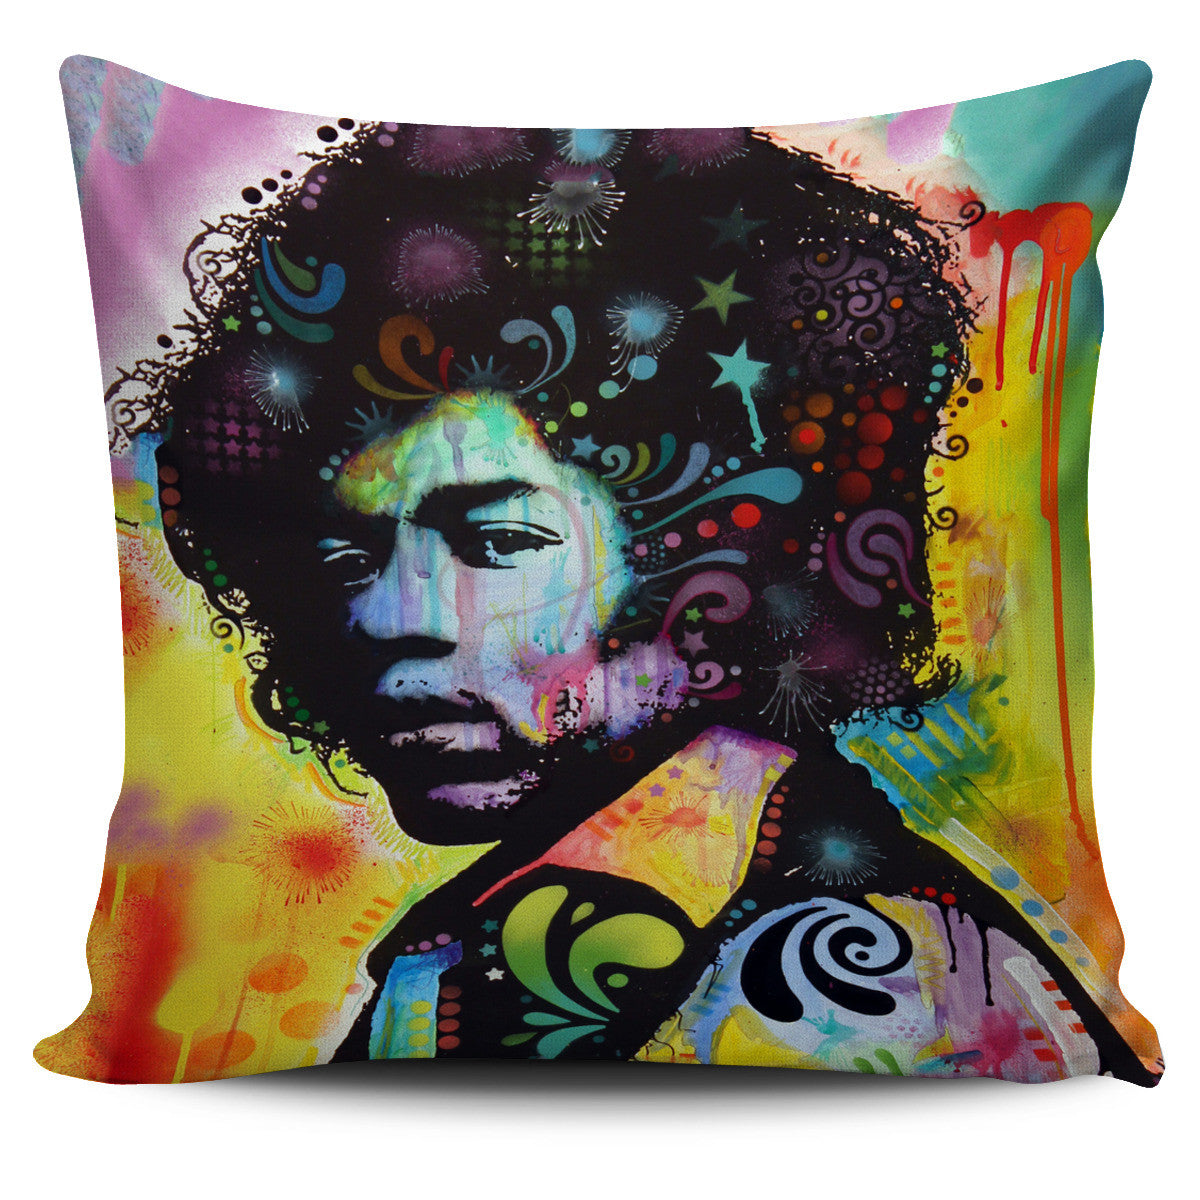 Hendrix Pillow Covers